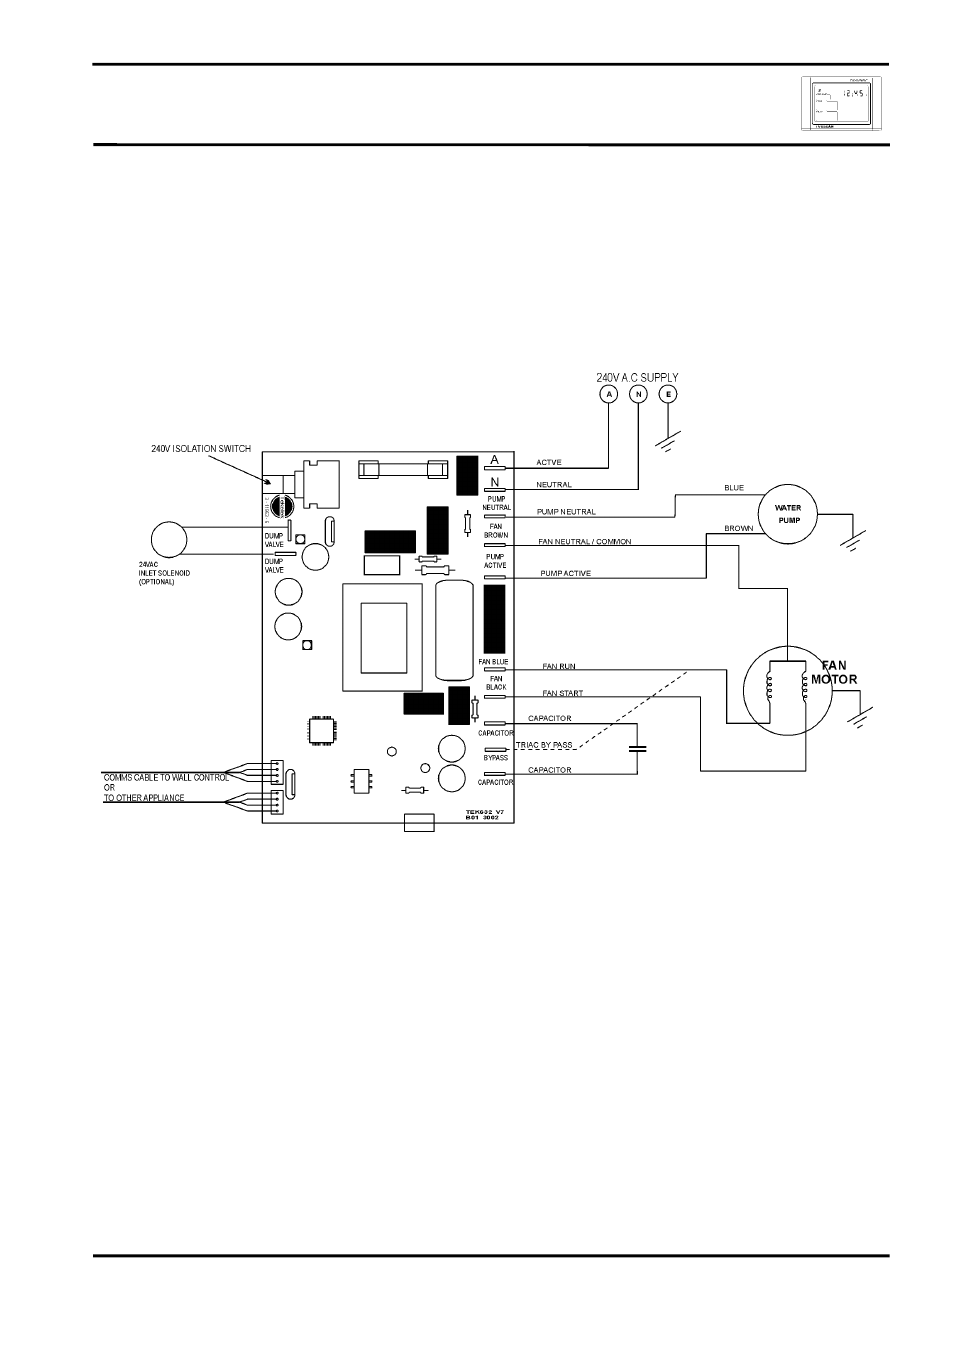 medium resolution of circuit diagram ircuit iagram bonaire touchpad control lv tekelek user manual page 16 32